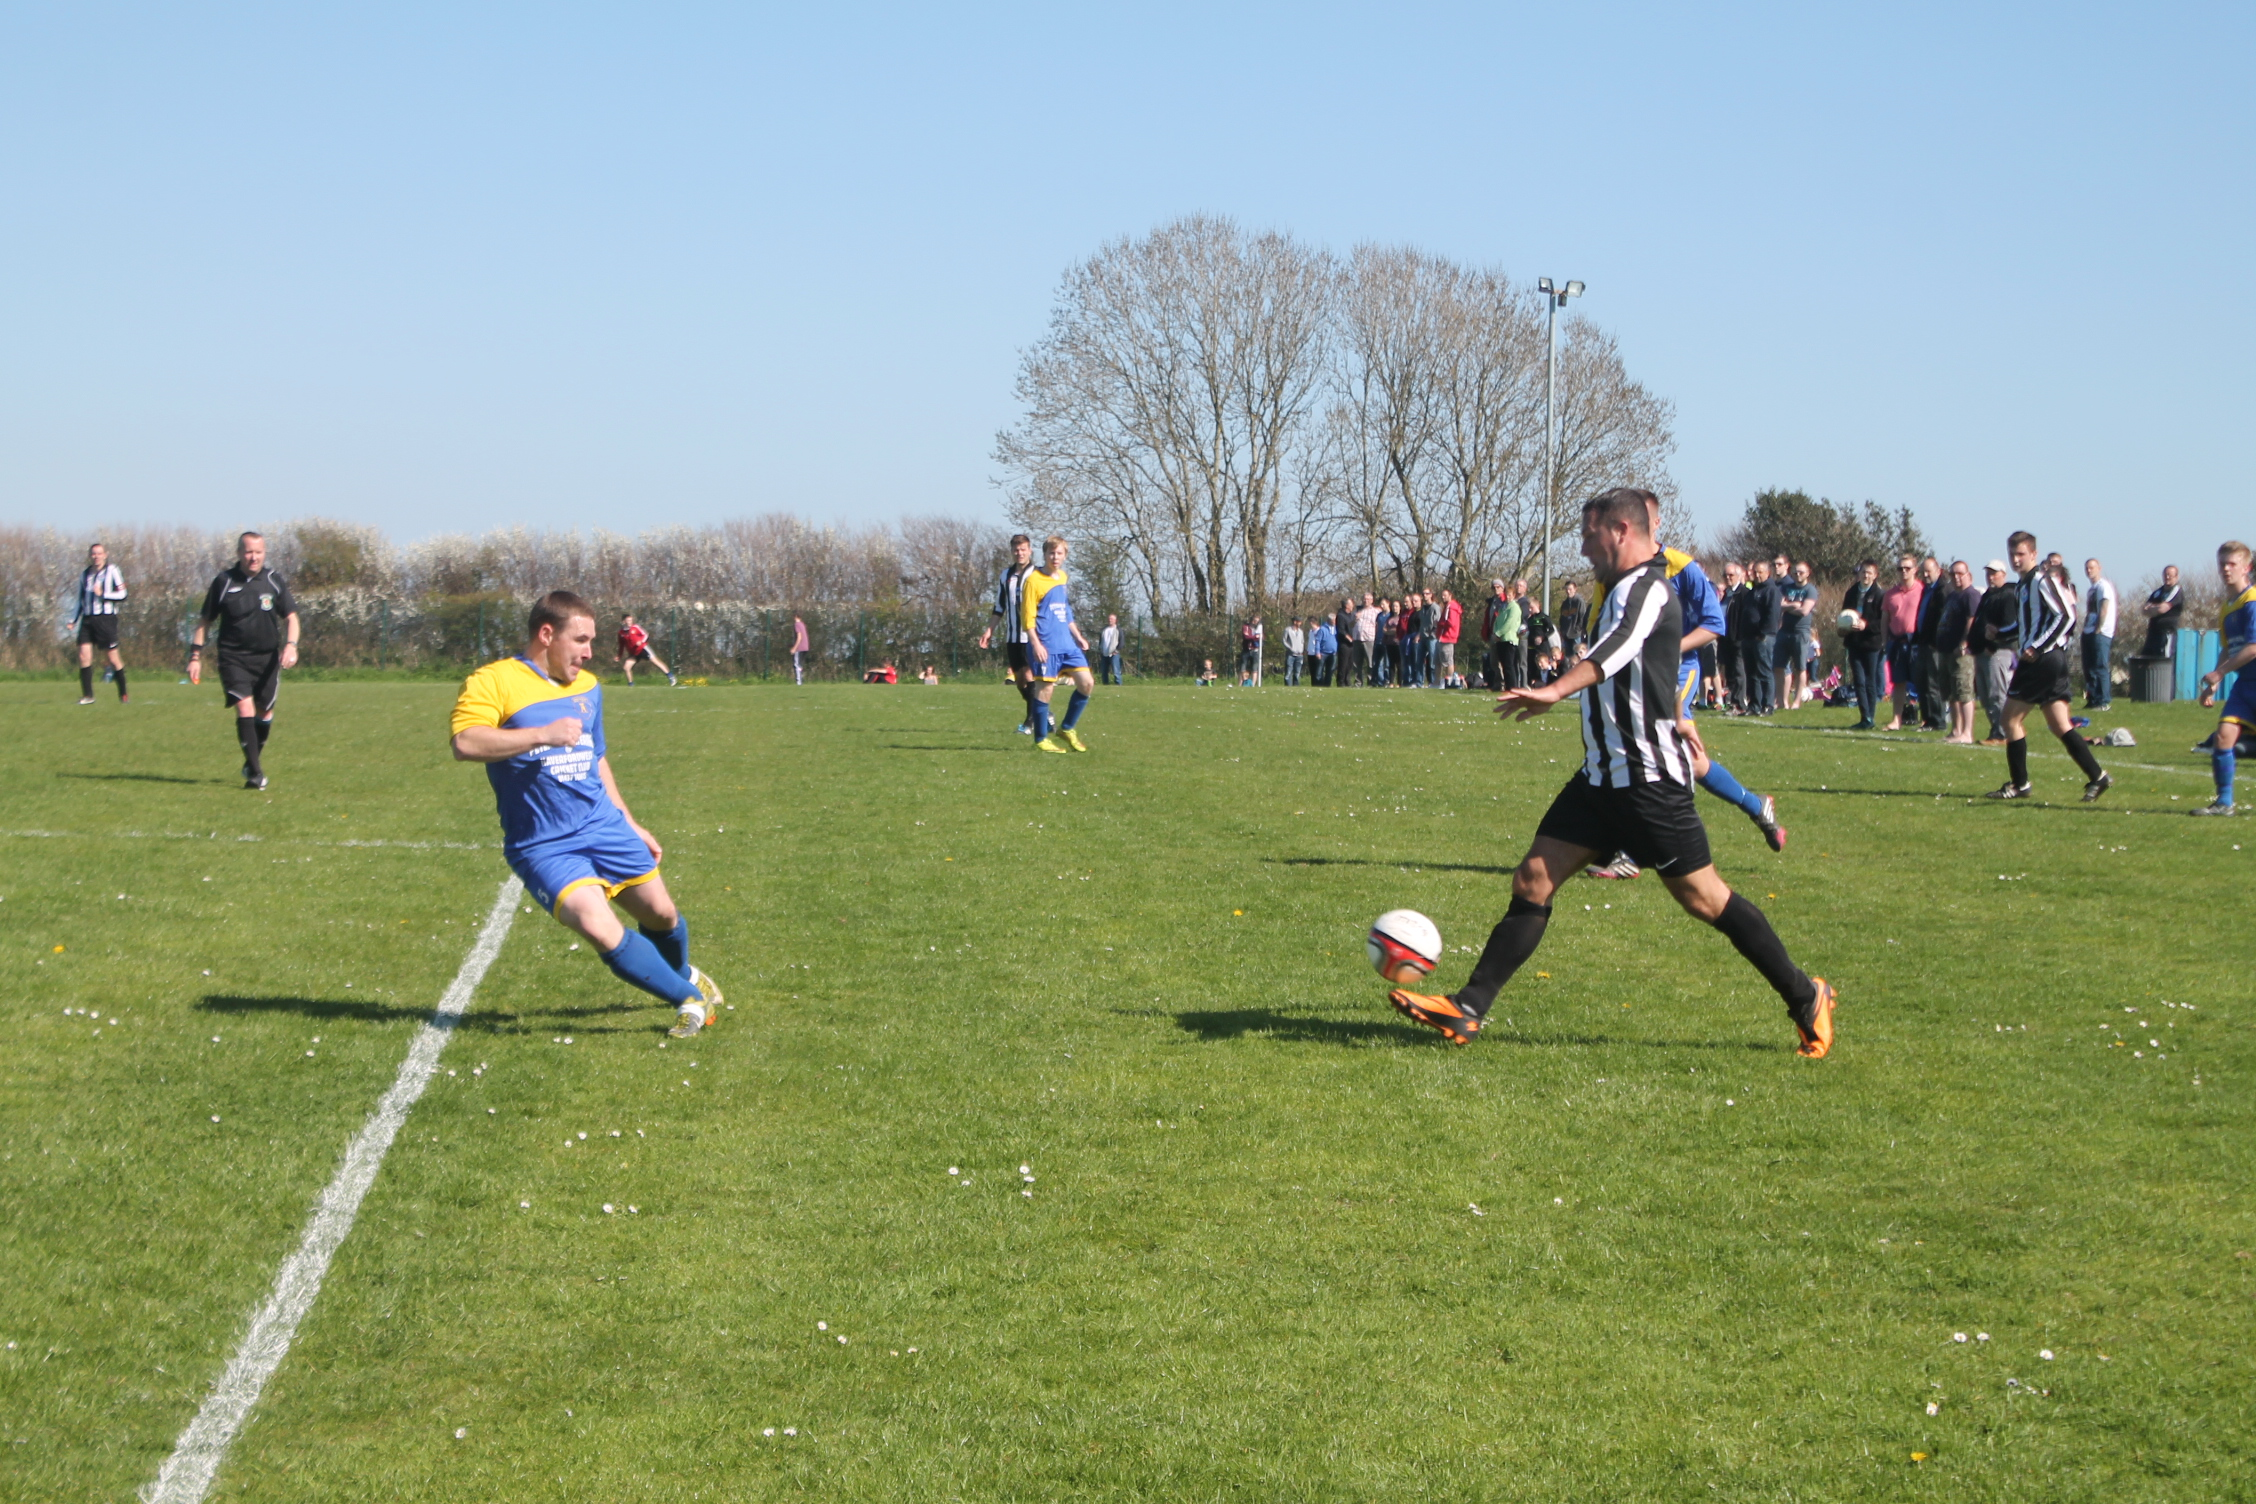 Playmaker: Wayne Parry scored one and set up another two goals